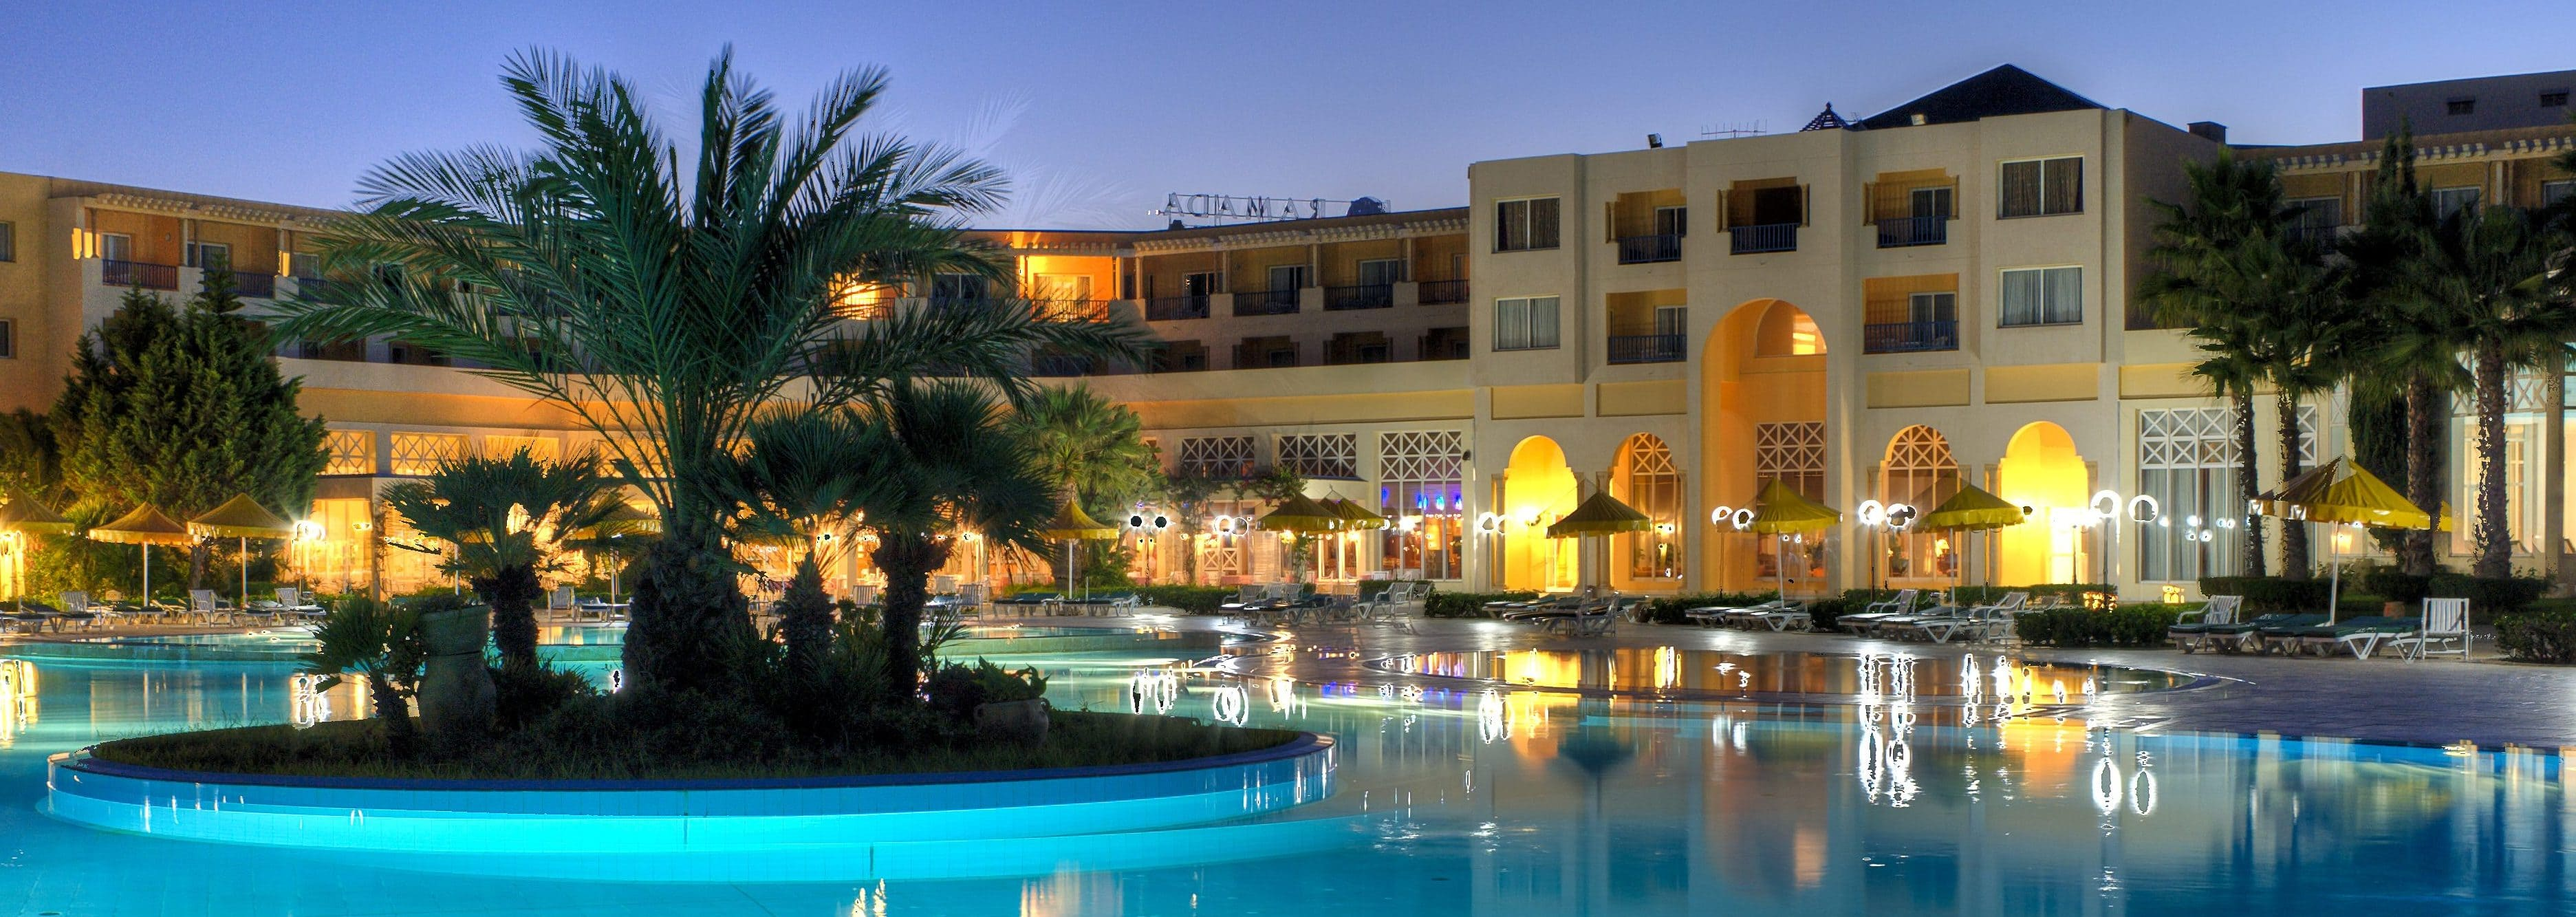 Corinthia Group - International Hotel Investments -  Ramada Plaza Tunis banner